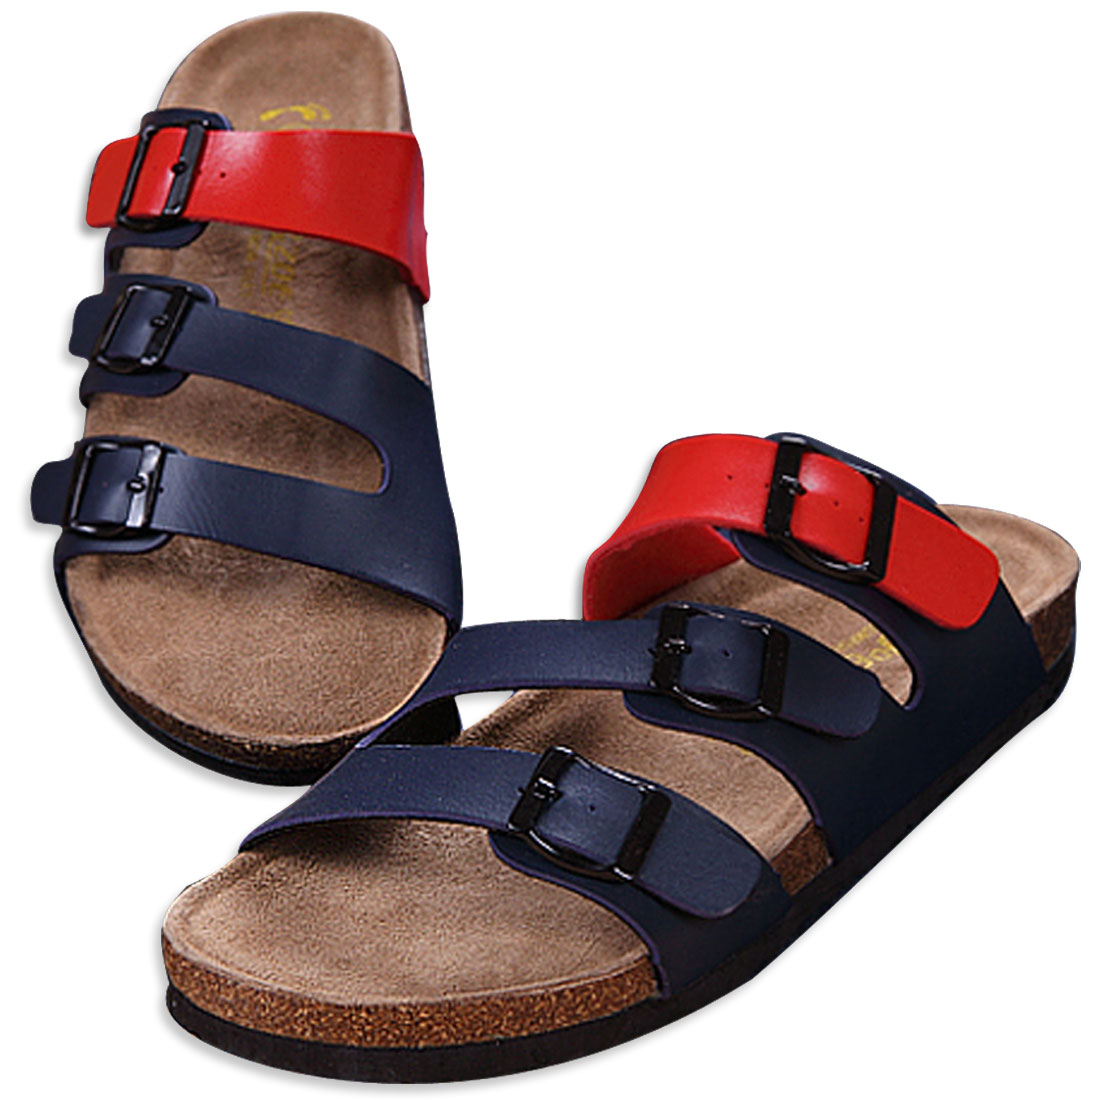 Men Personalized Cork Footbed Red Navy Blue Sandals US 8